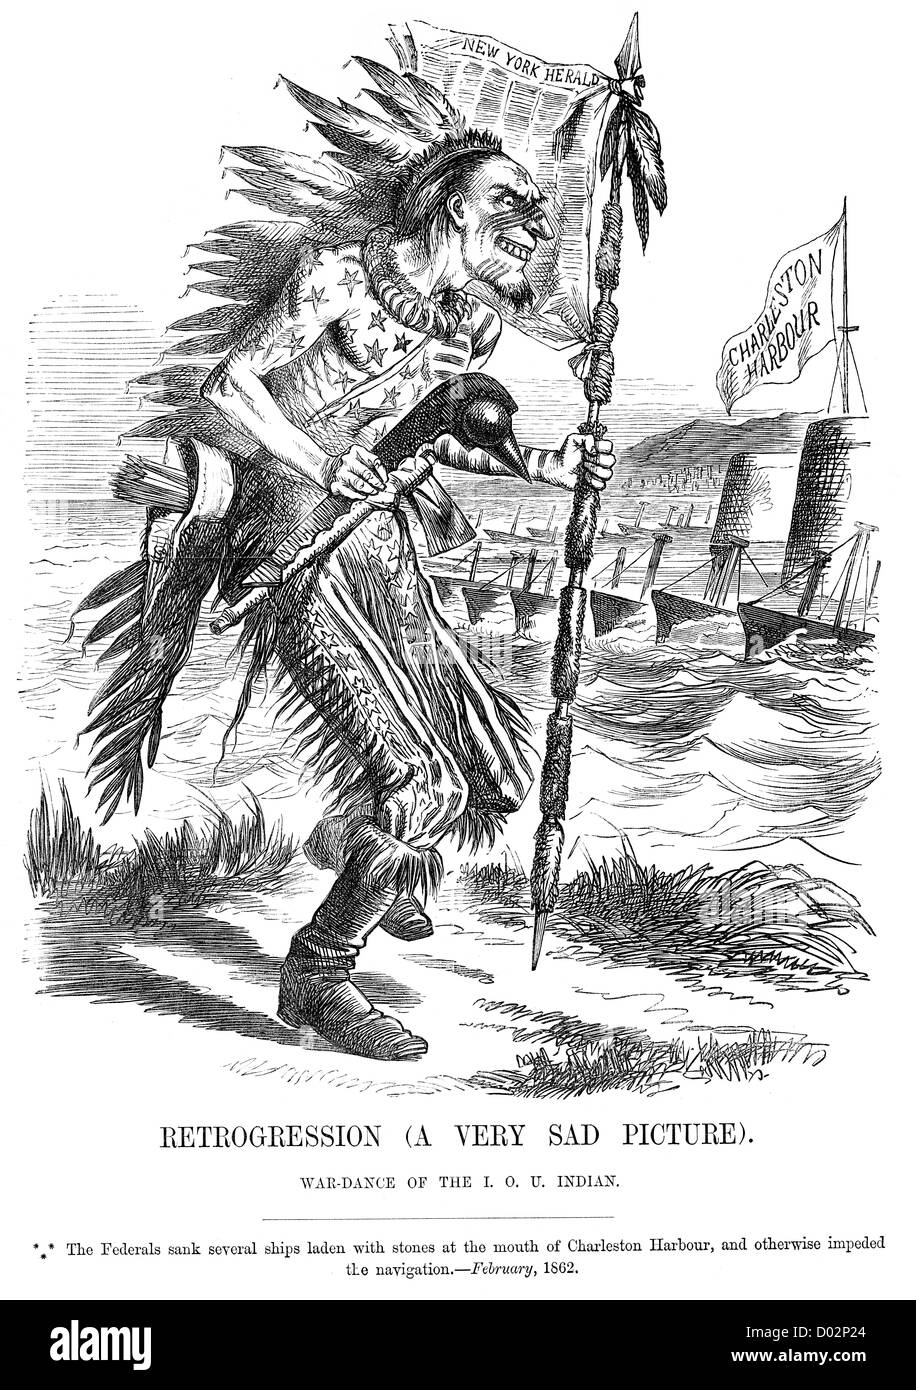 Retrogression War Dance Of The Iou Indian Political Cartoon About